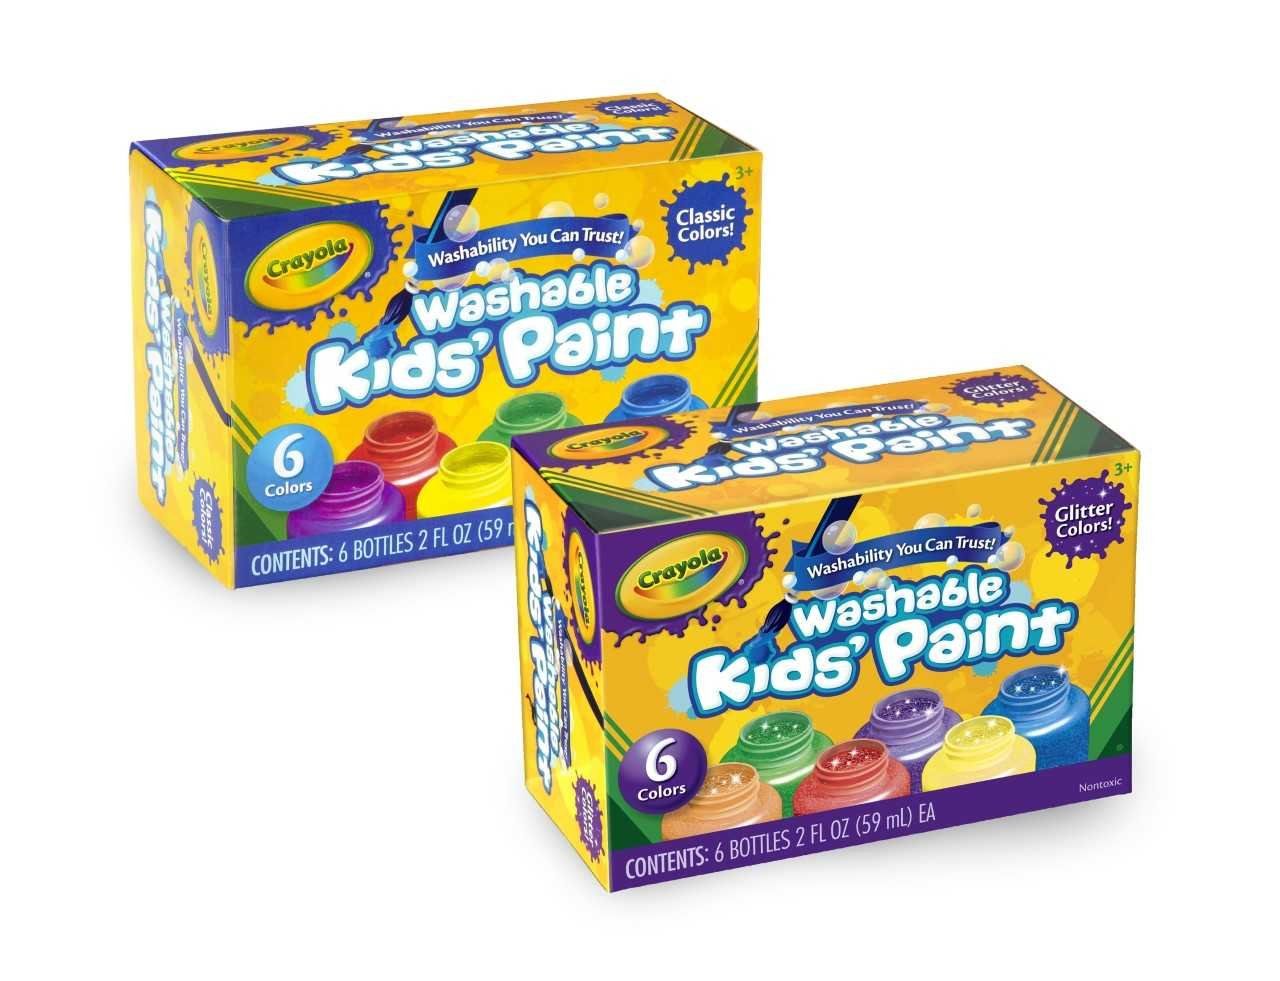 Crayola Washable Kids' Paint, Includes Glitter Paint, 12 Count